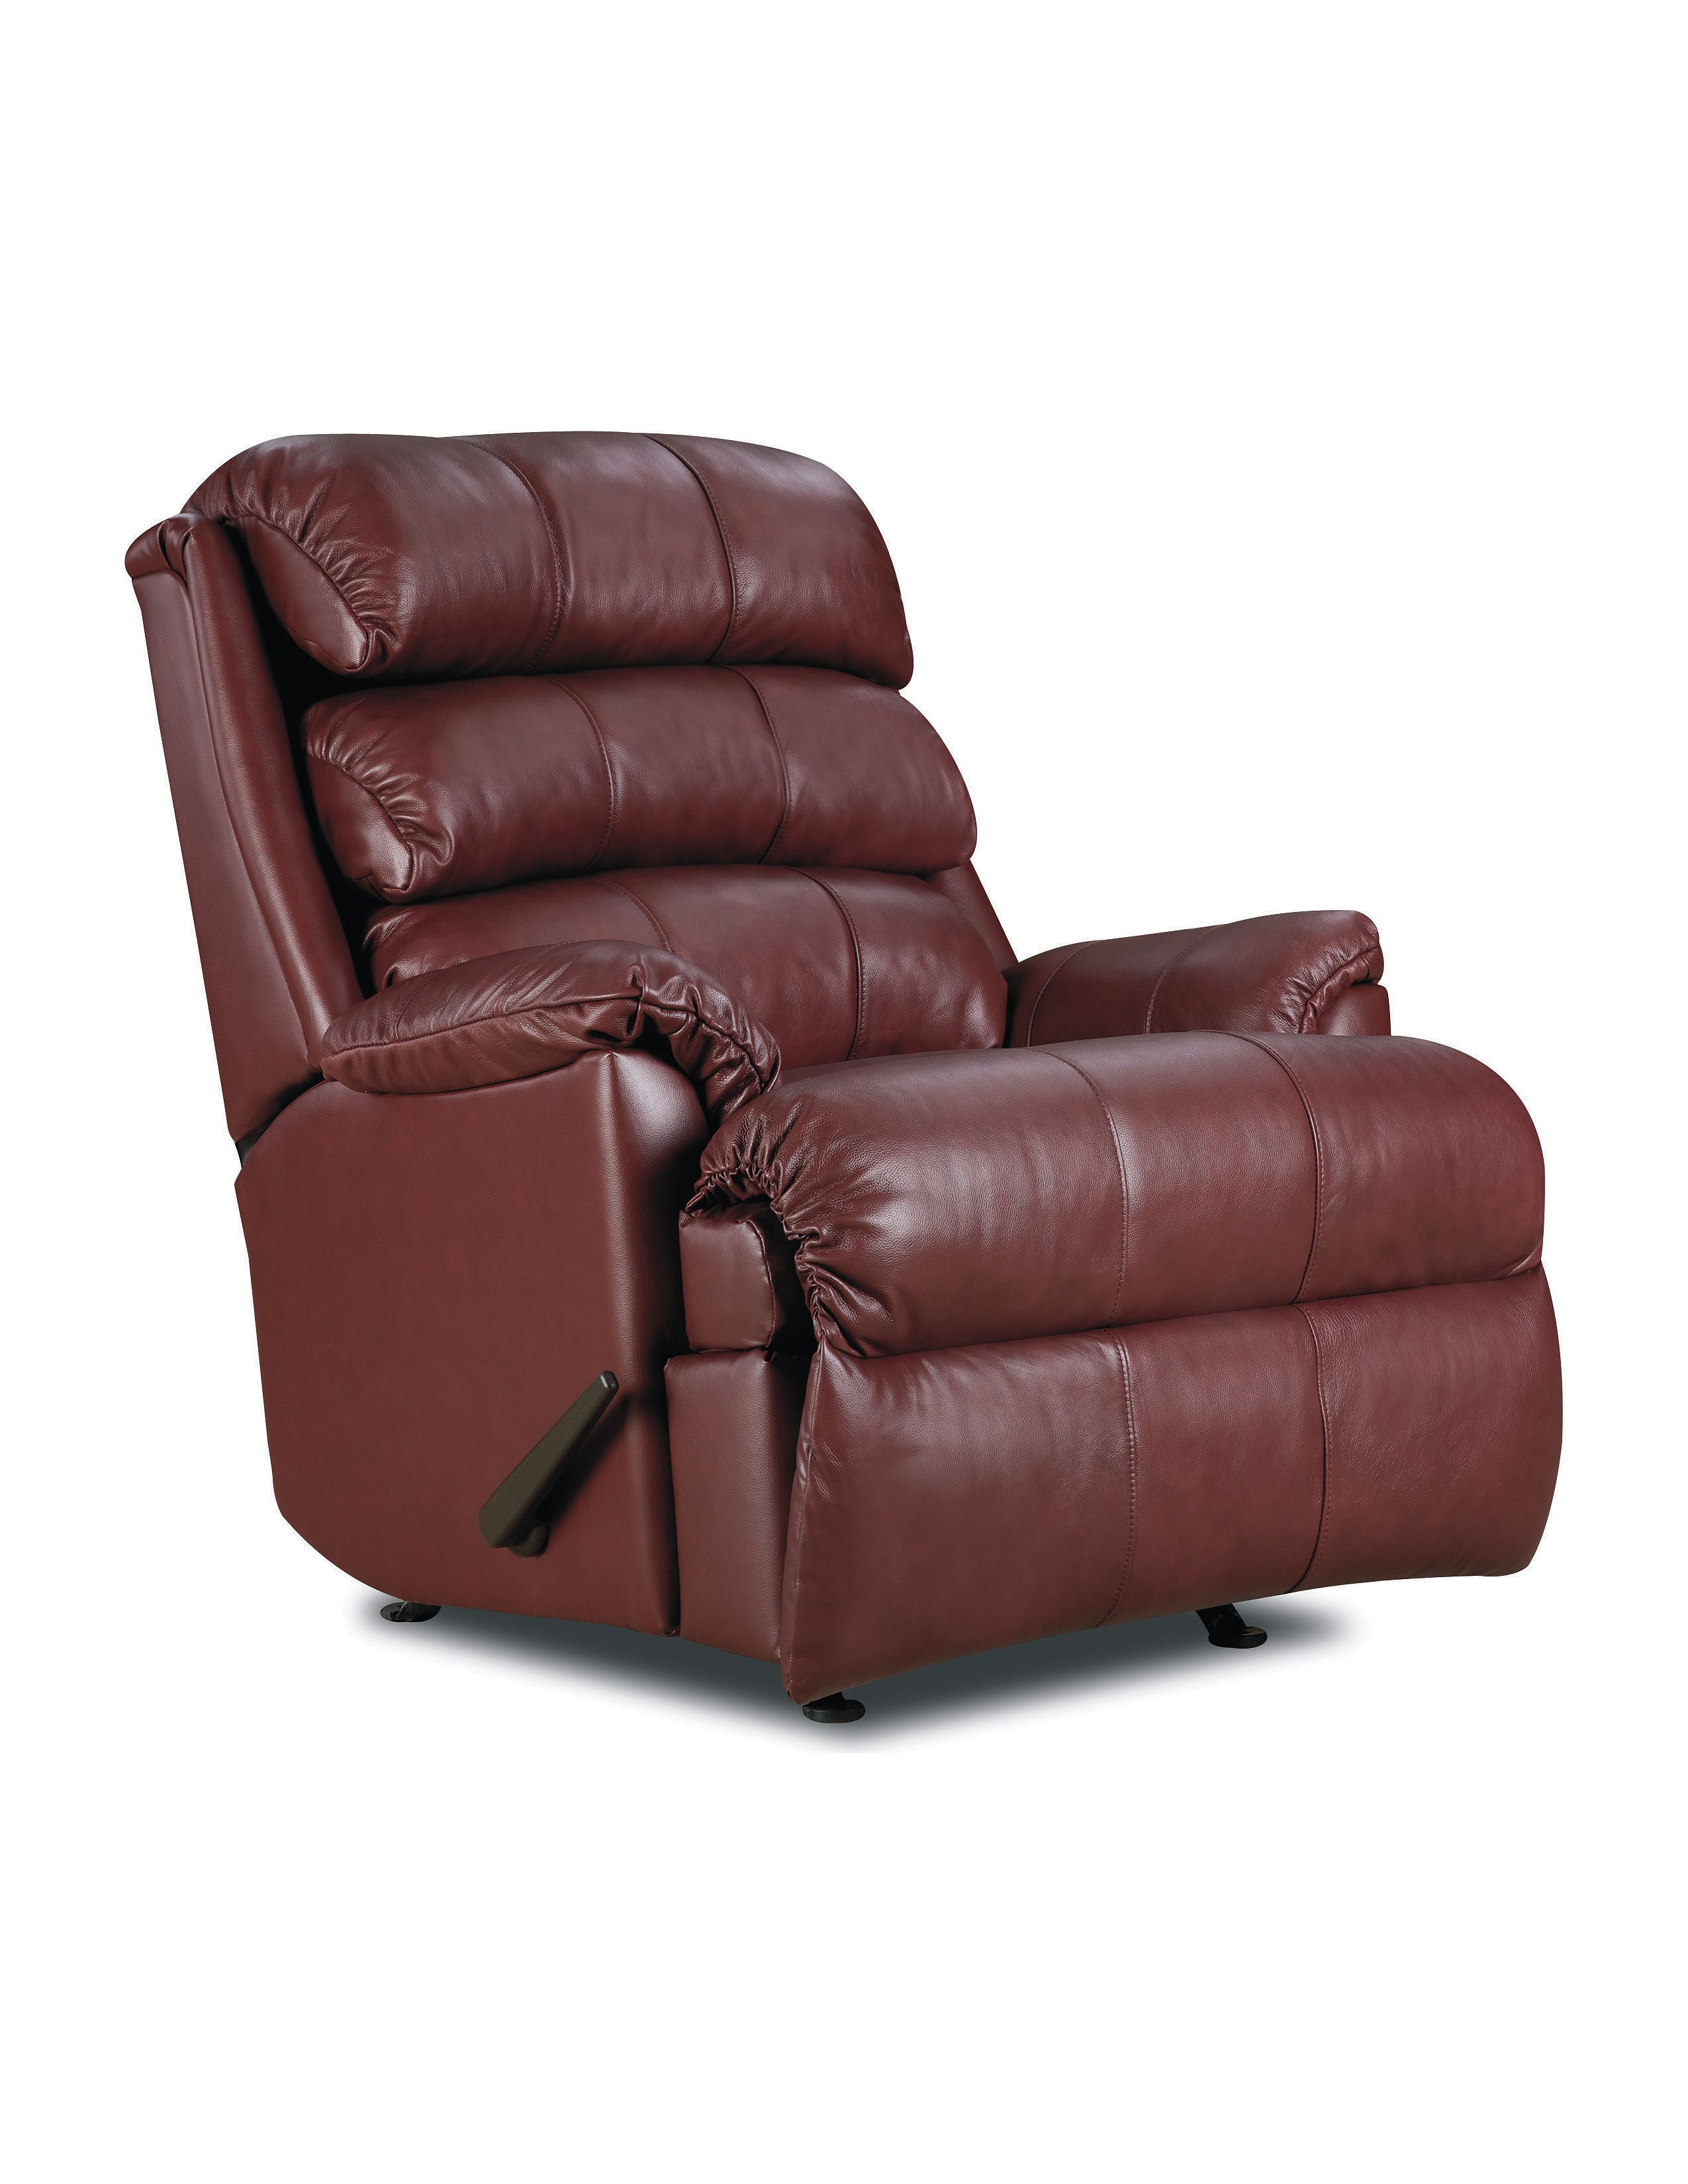 Lane furniture revive leather rocker recliner with power for Burgundy leather chaise